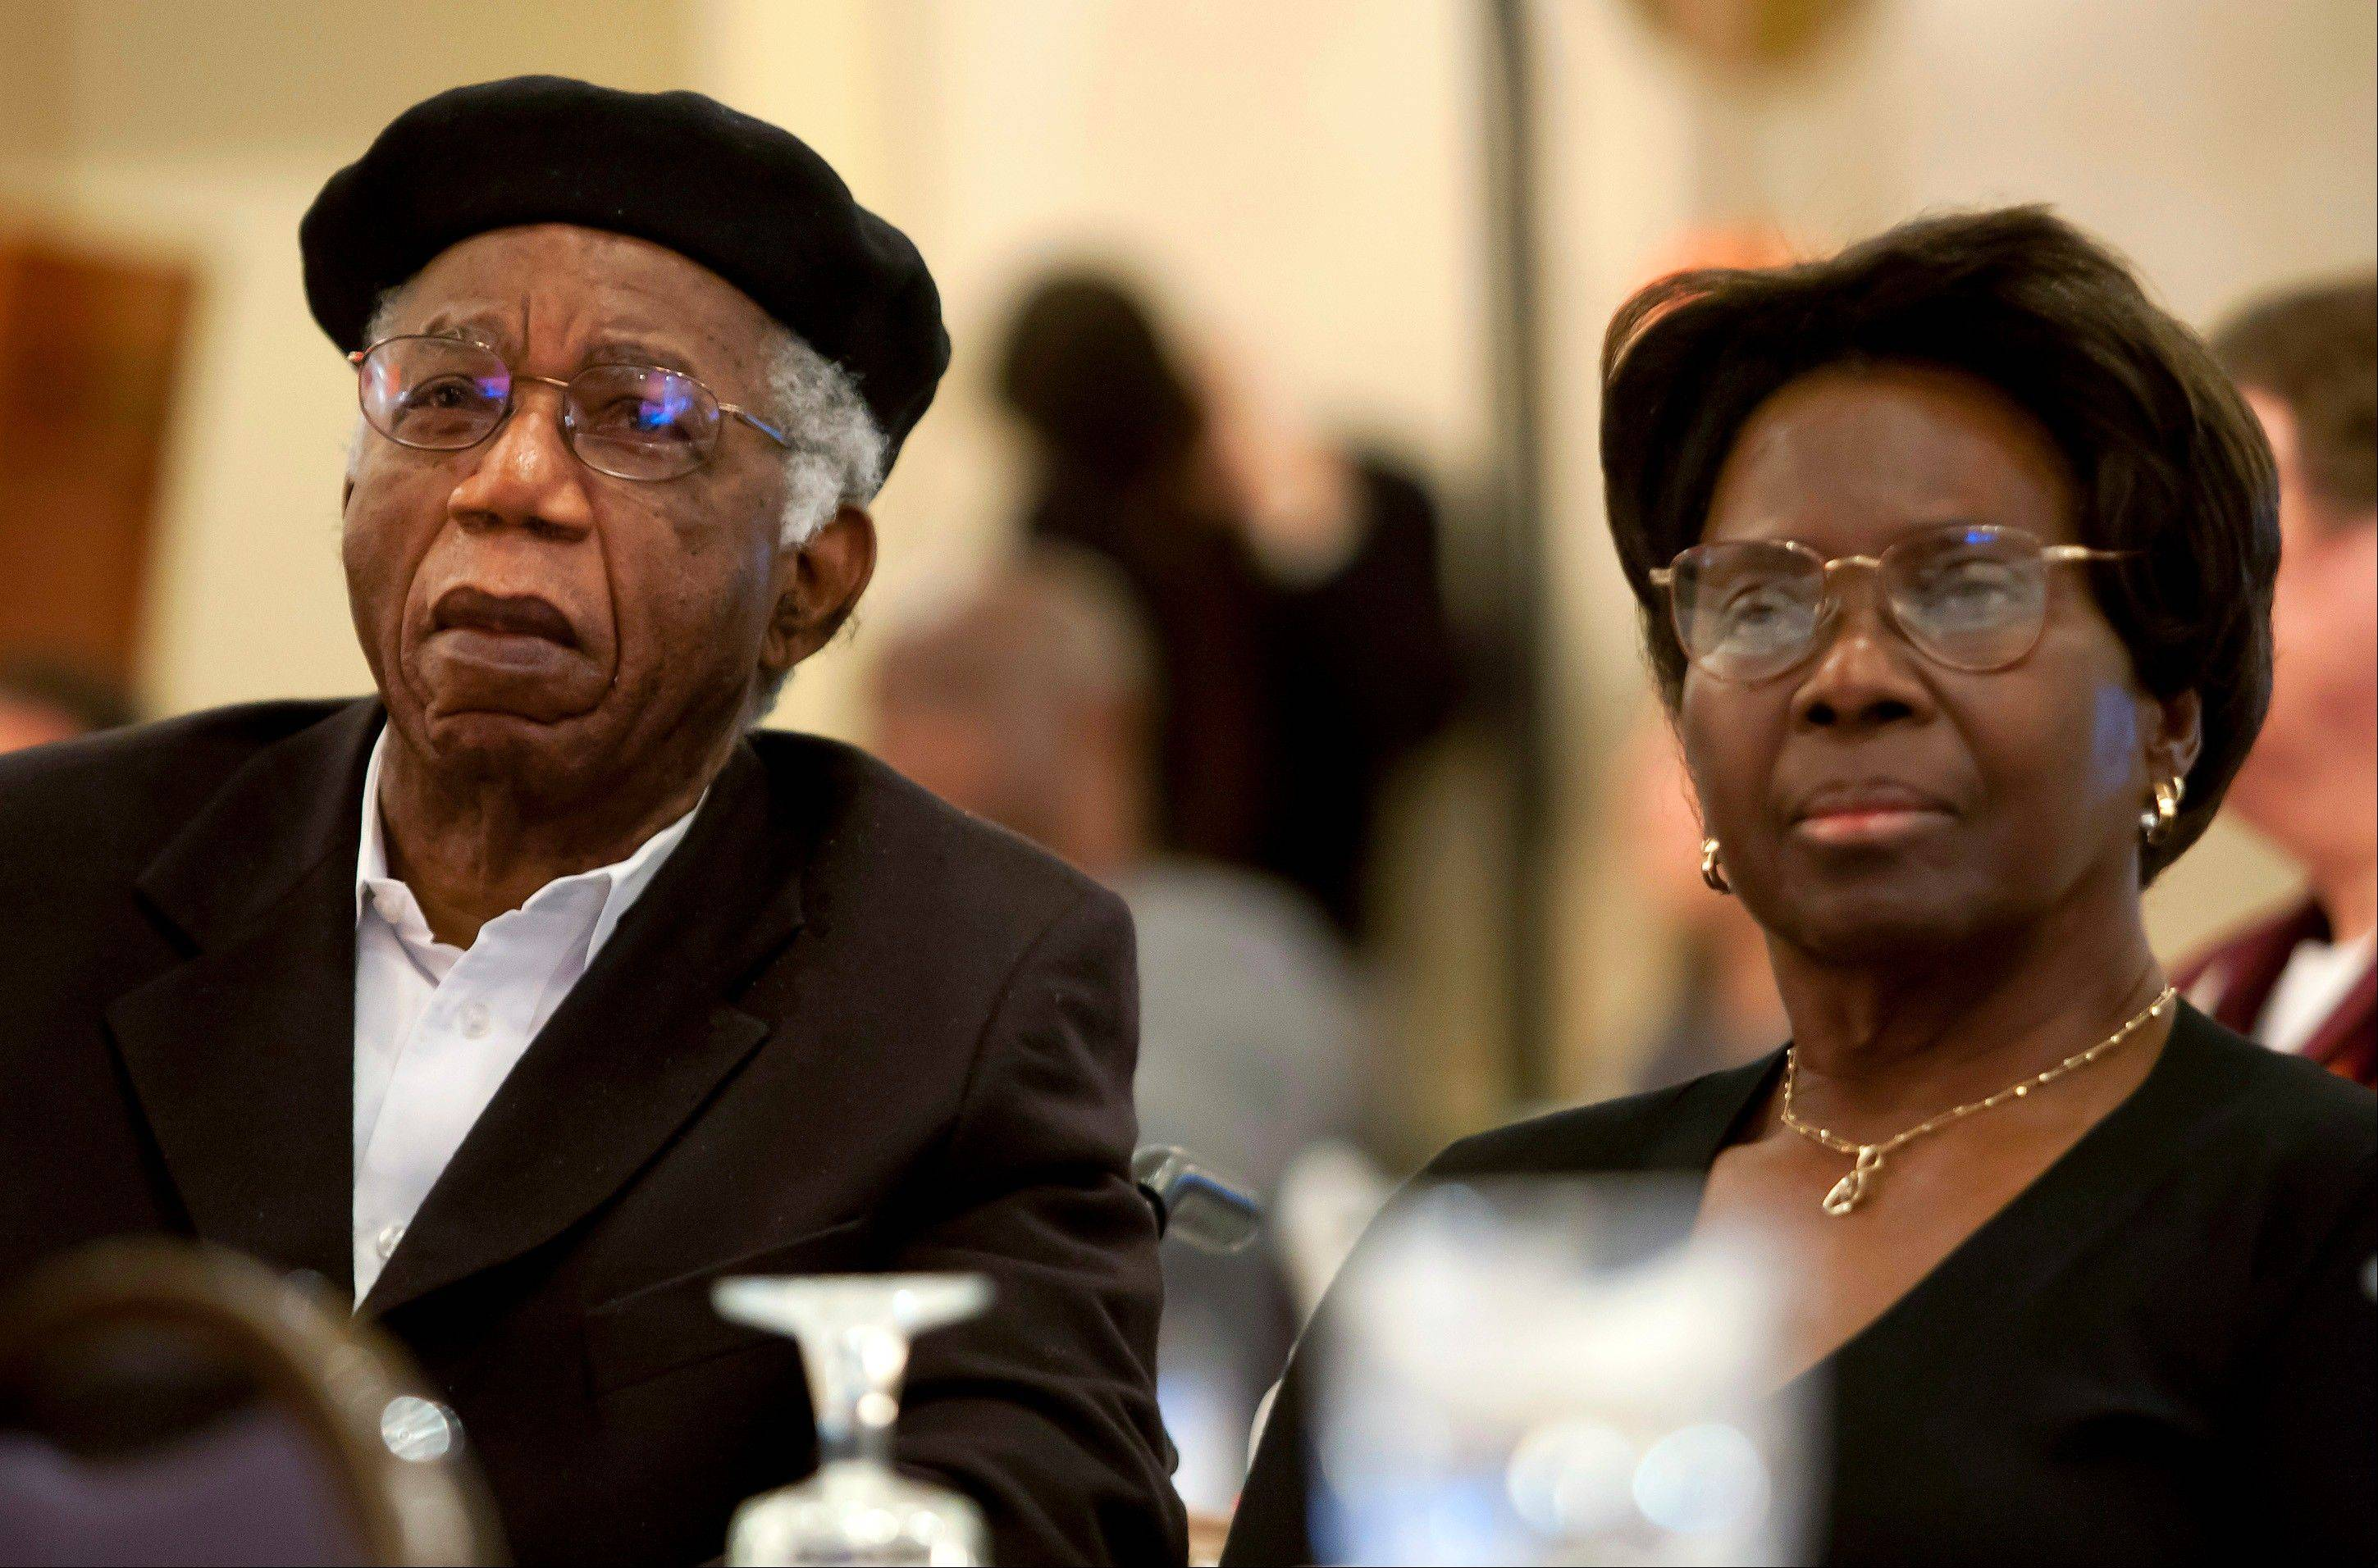 Chinua Achebe, left, with his wife Christie Achebe on campus in Providence, R.I.